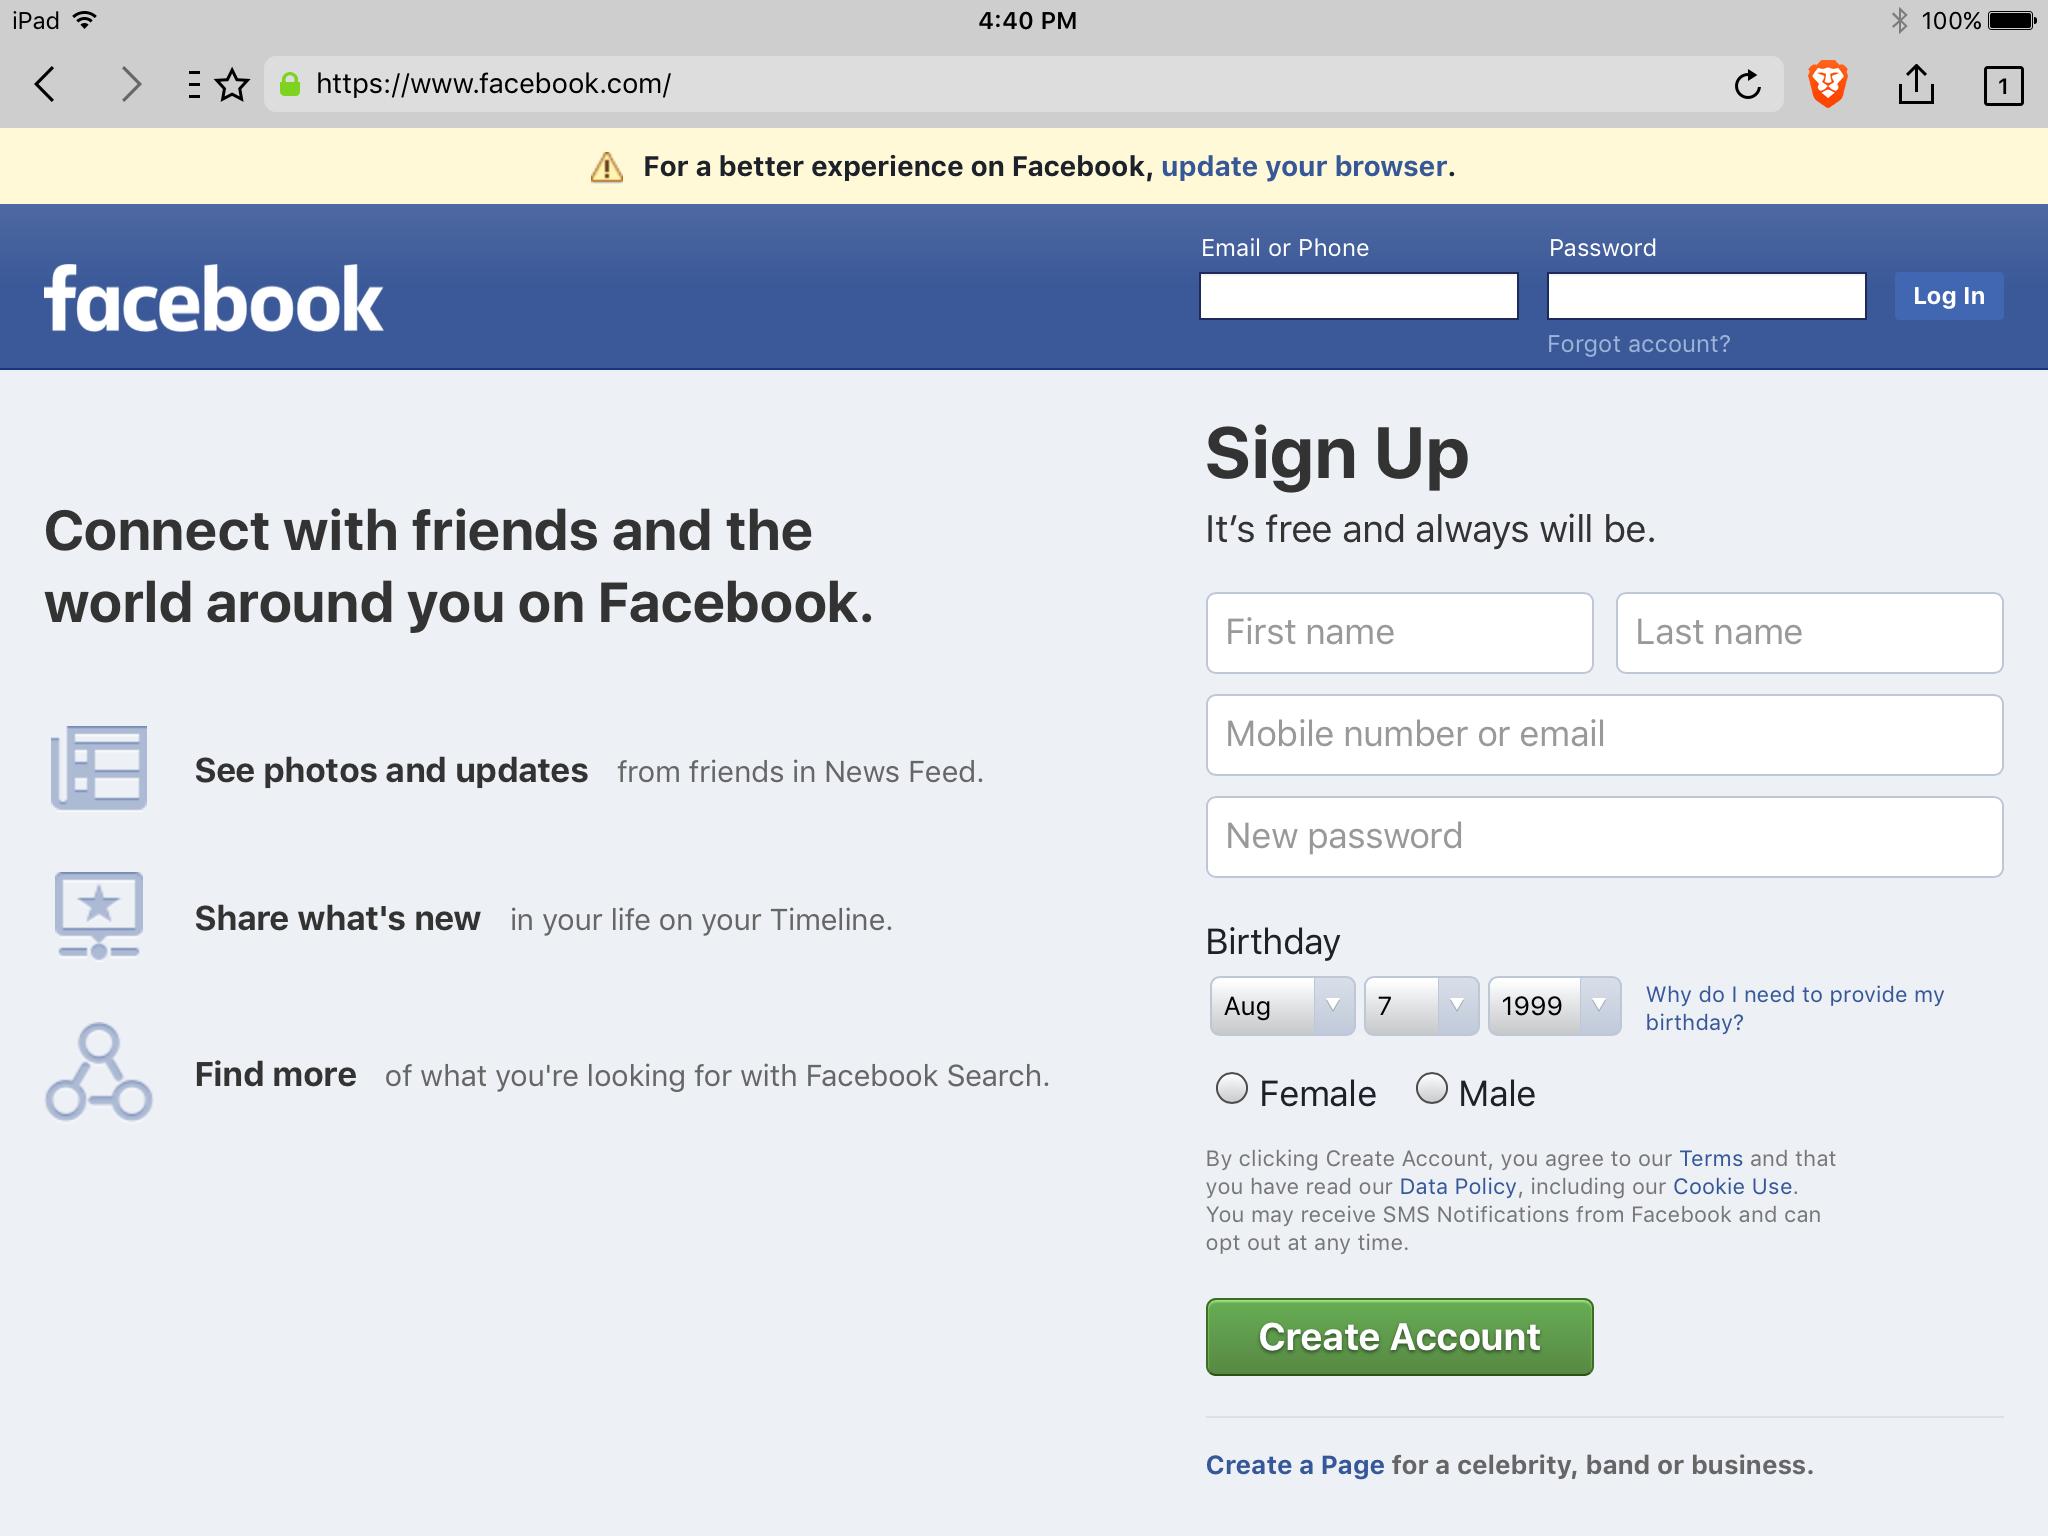 Facebook displays a warning (indicates Brave is an unsupported